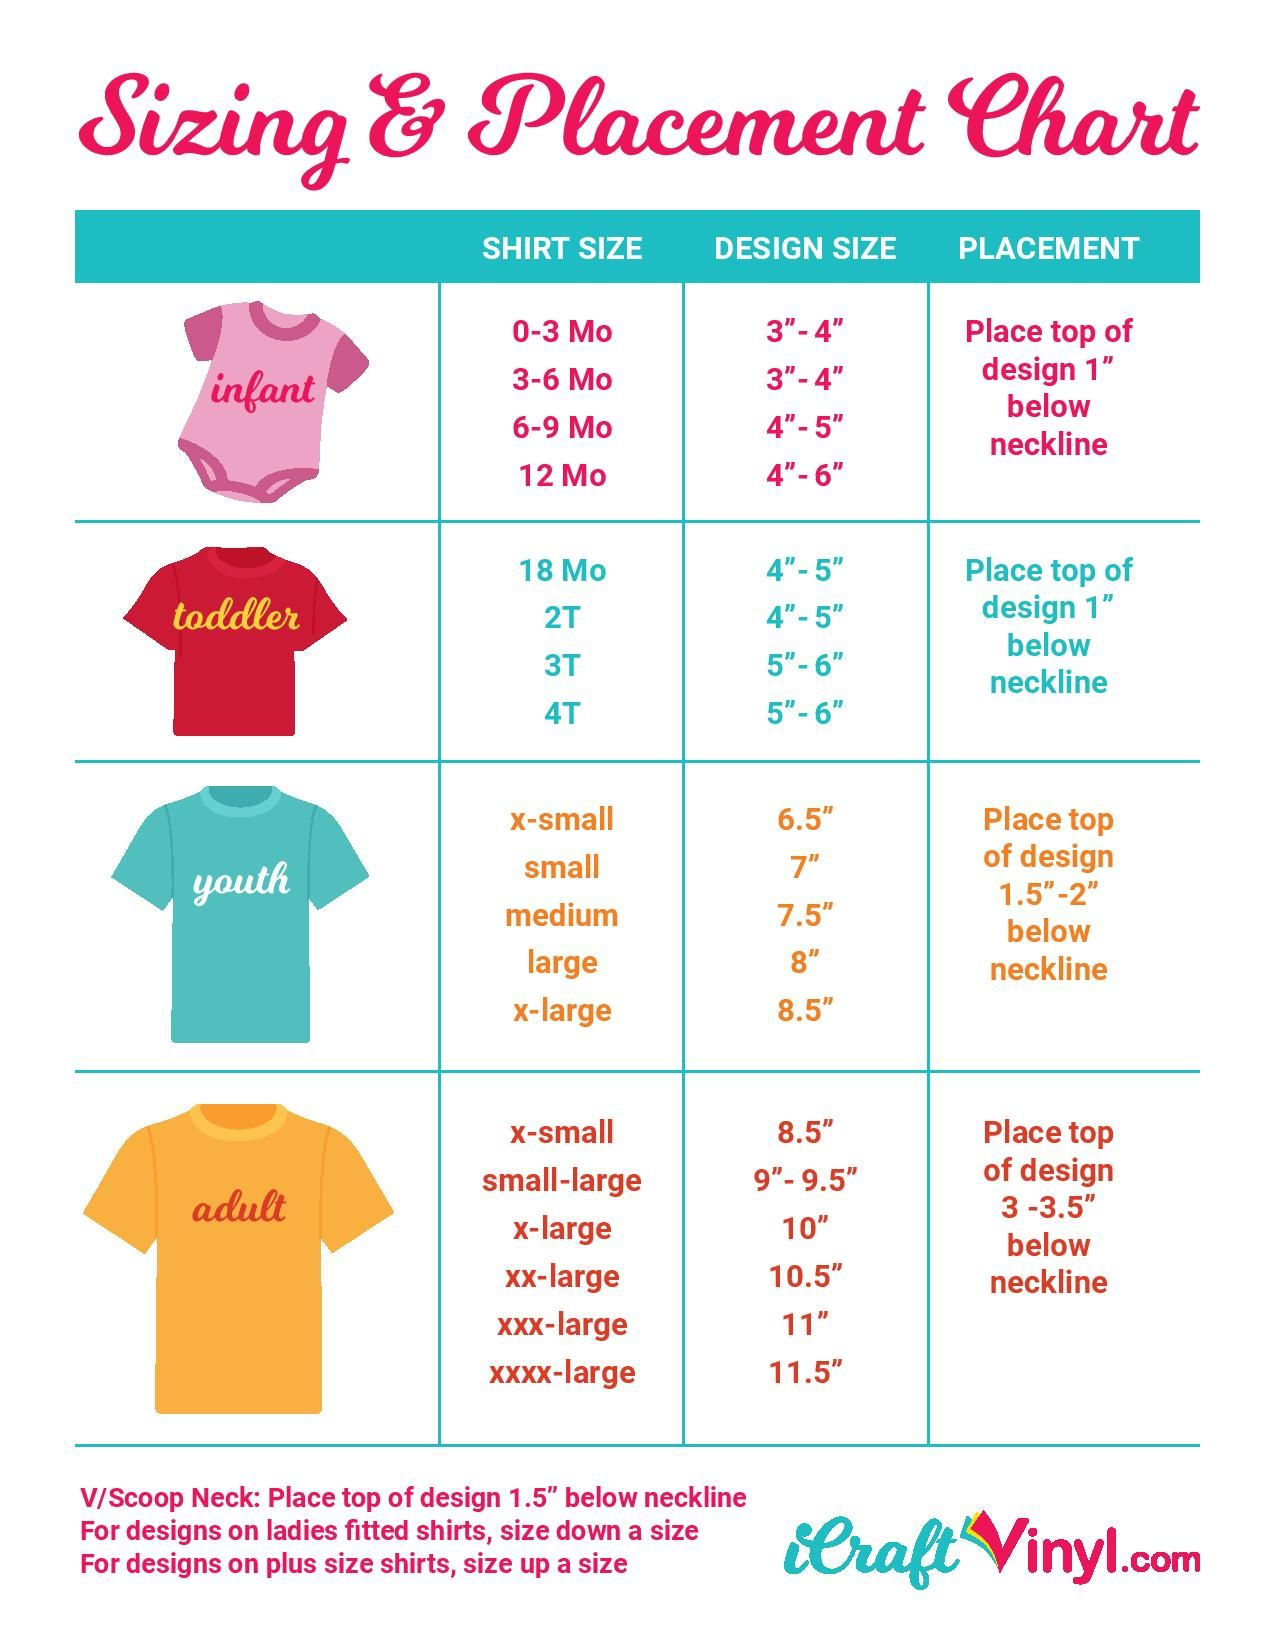 Proper Sizing Placement For Your Heat Transfer Vinyl Designs Free Guide In 2020 Cricut Heat Transfer Vinyl Printable Heat Transfer Vinyl Adhesive Vinyl Projects